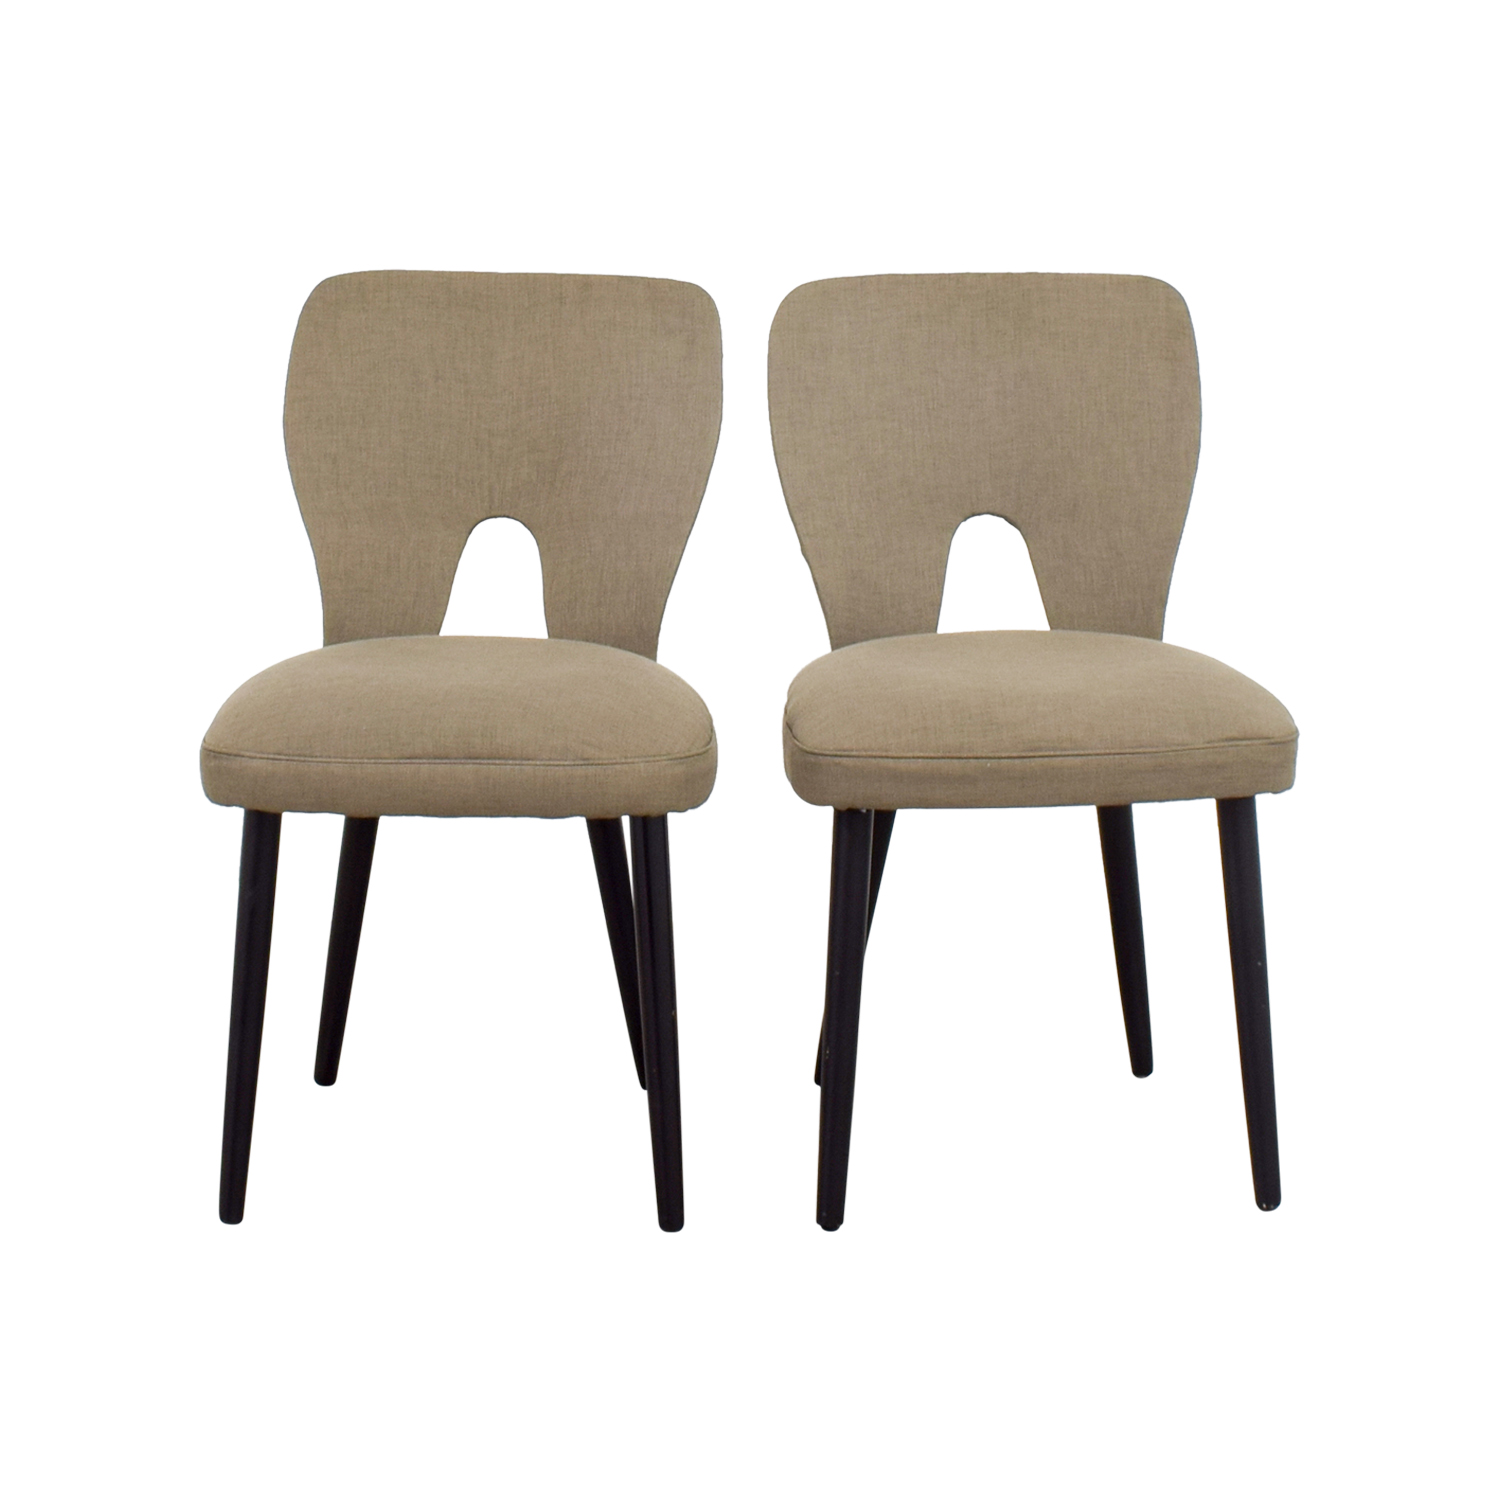 Wayfair Upholstered Beige Dining Chairs